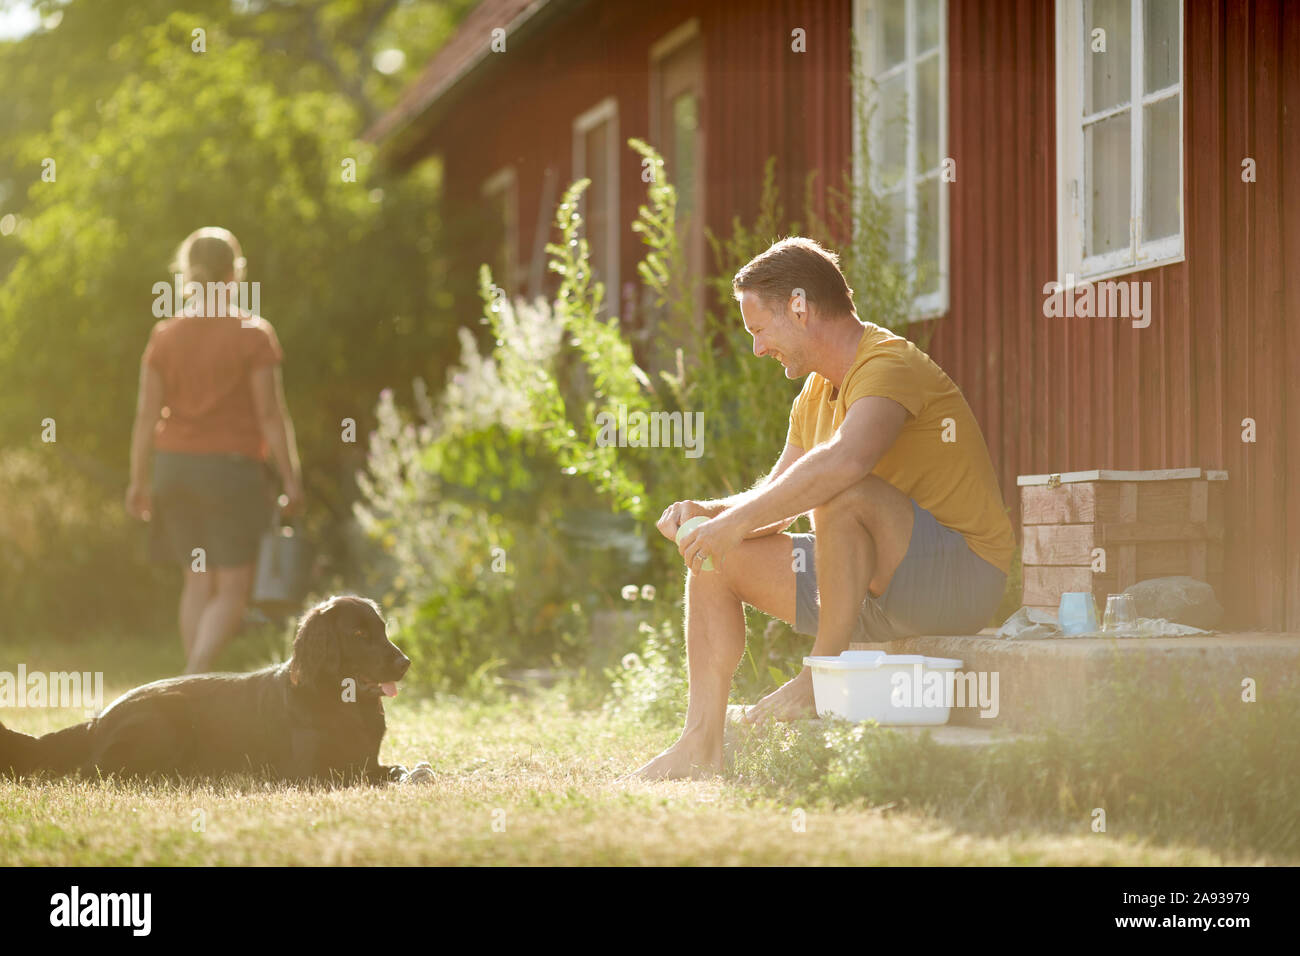 Man with dog in front of house Stock Photo